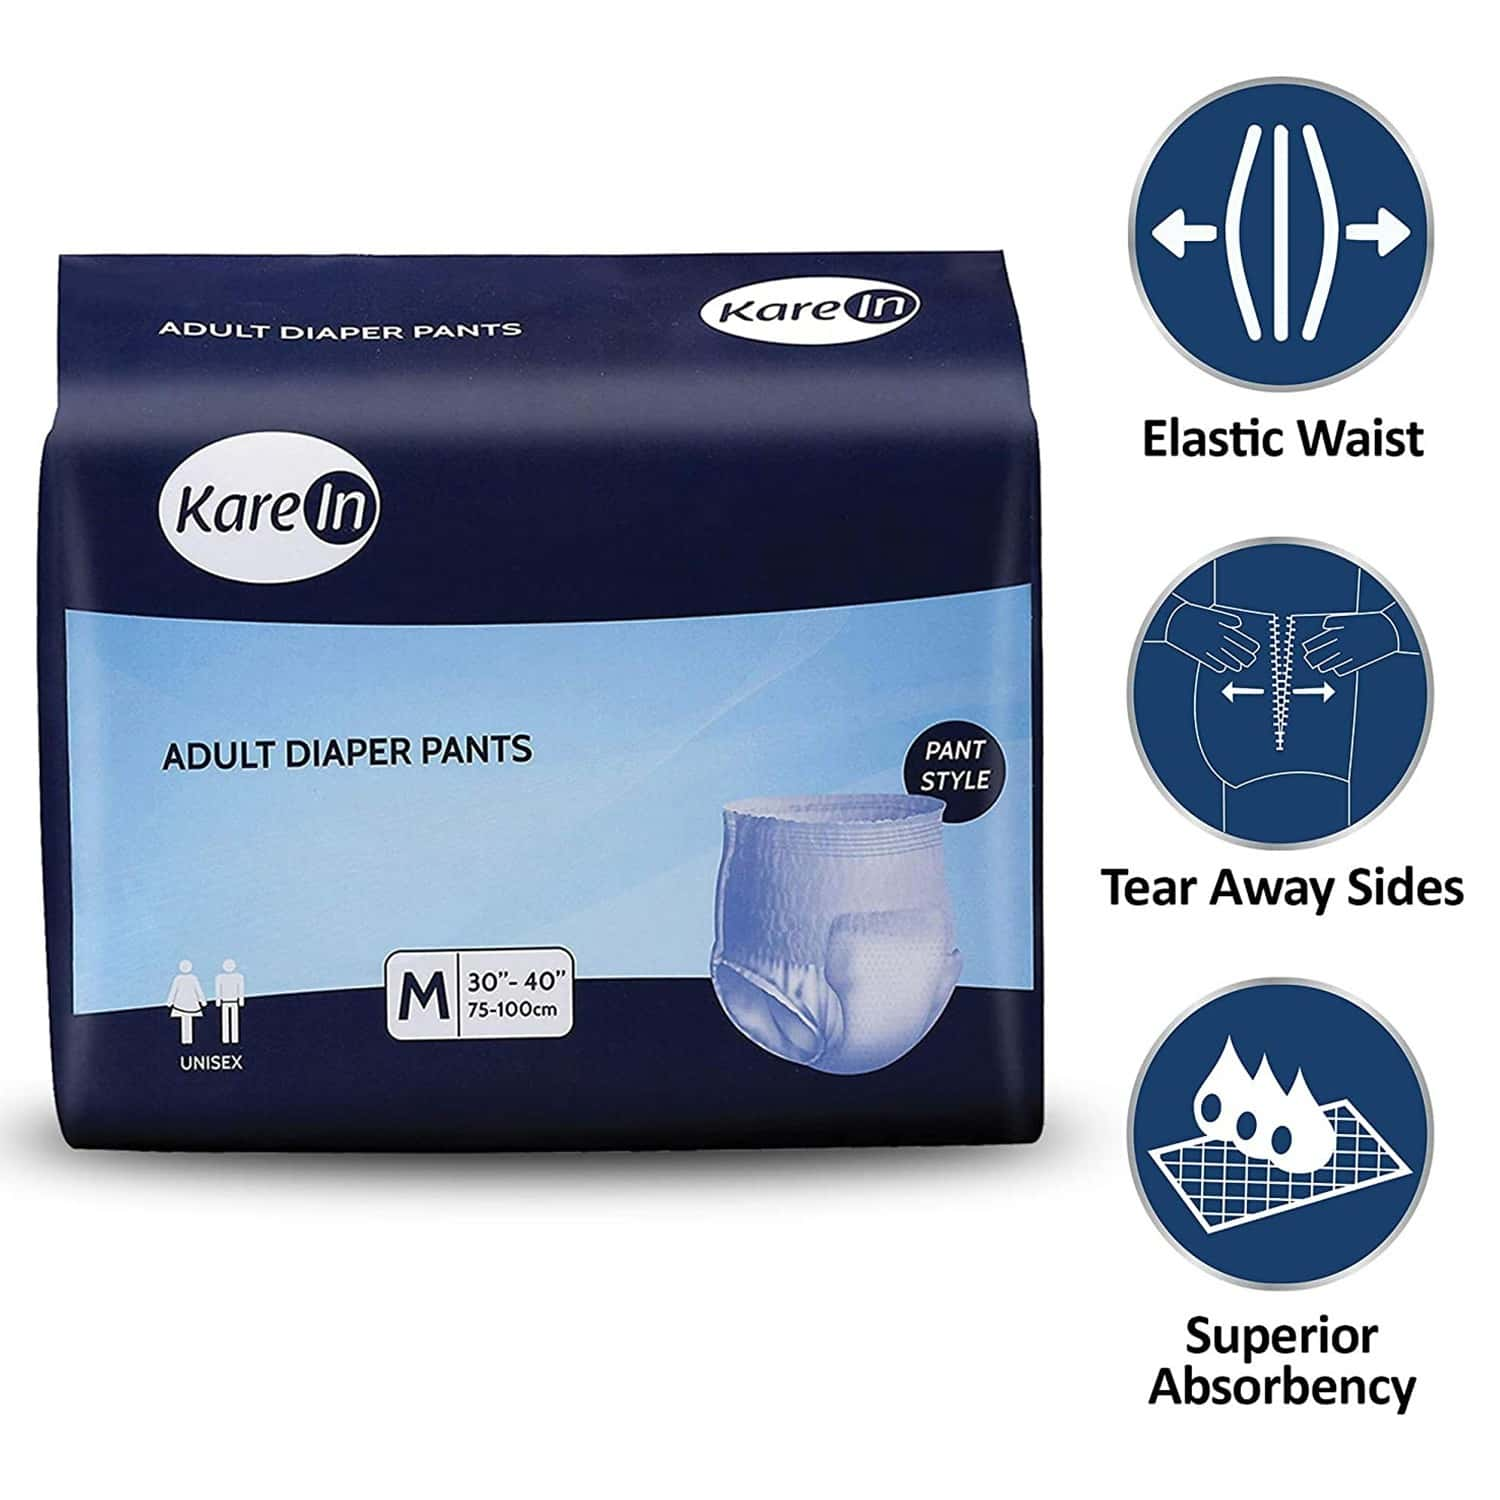 Kare In Pull Ups - Pant Style Underwear Medium Waist Size 75-100cm (30-40) High Absorbency 10 Pcs